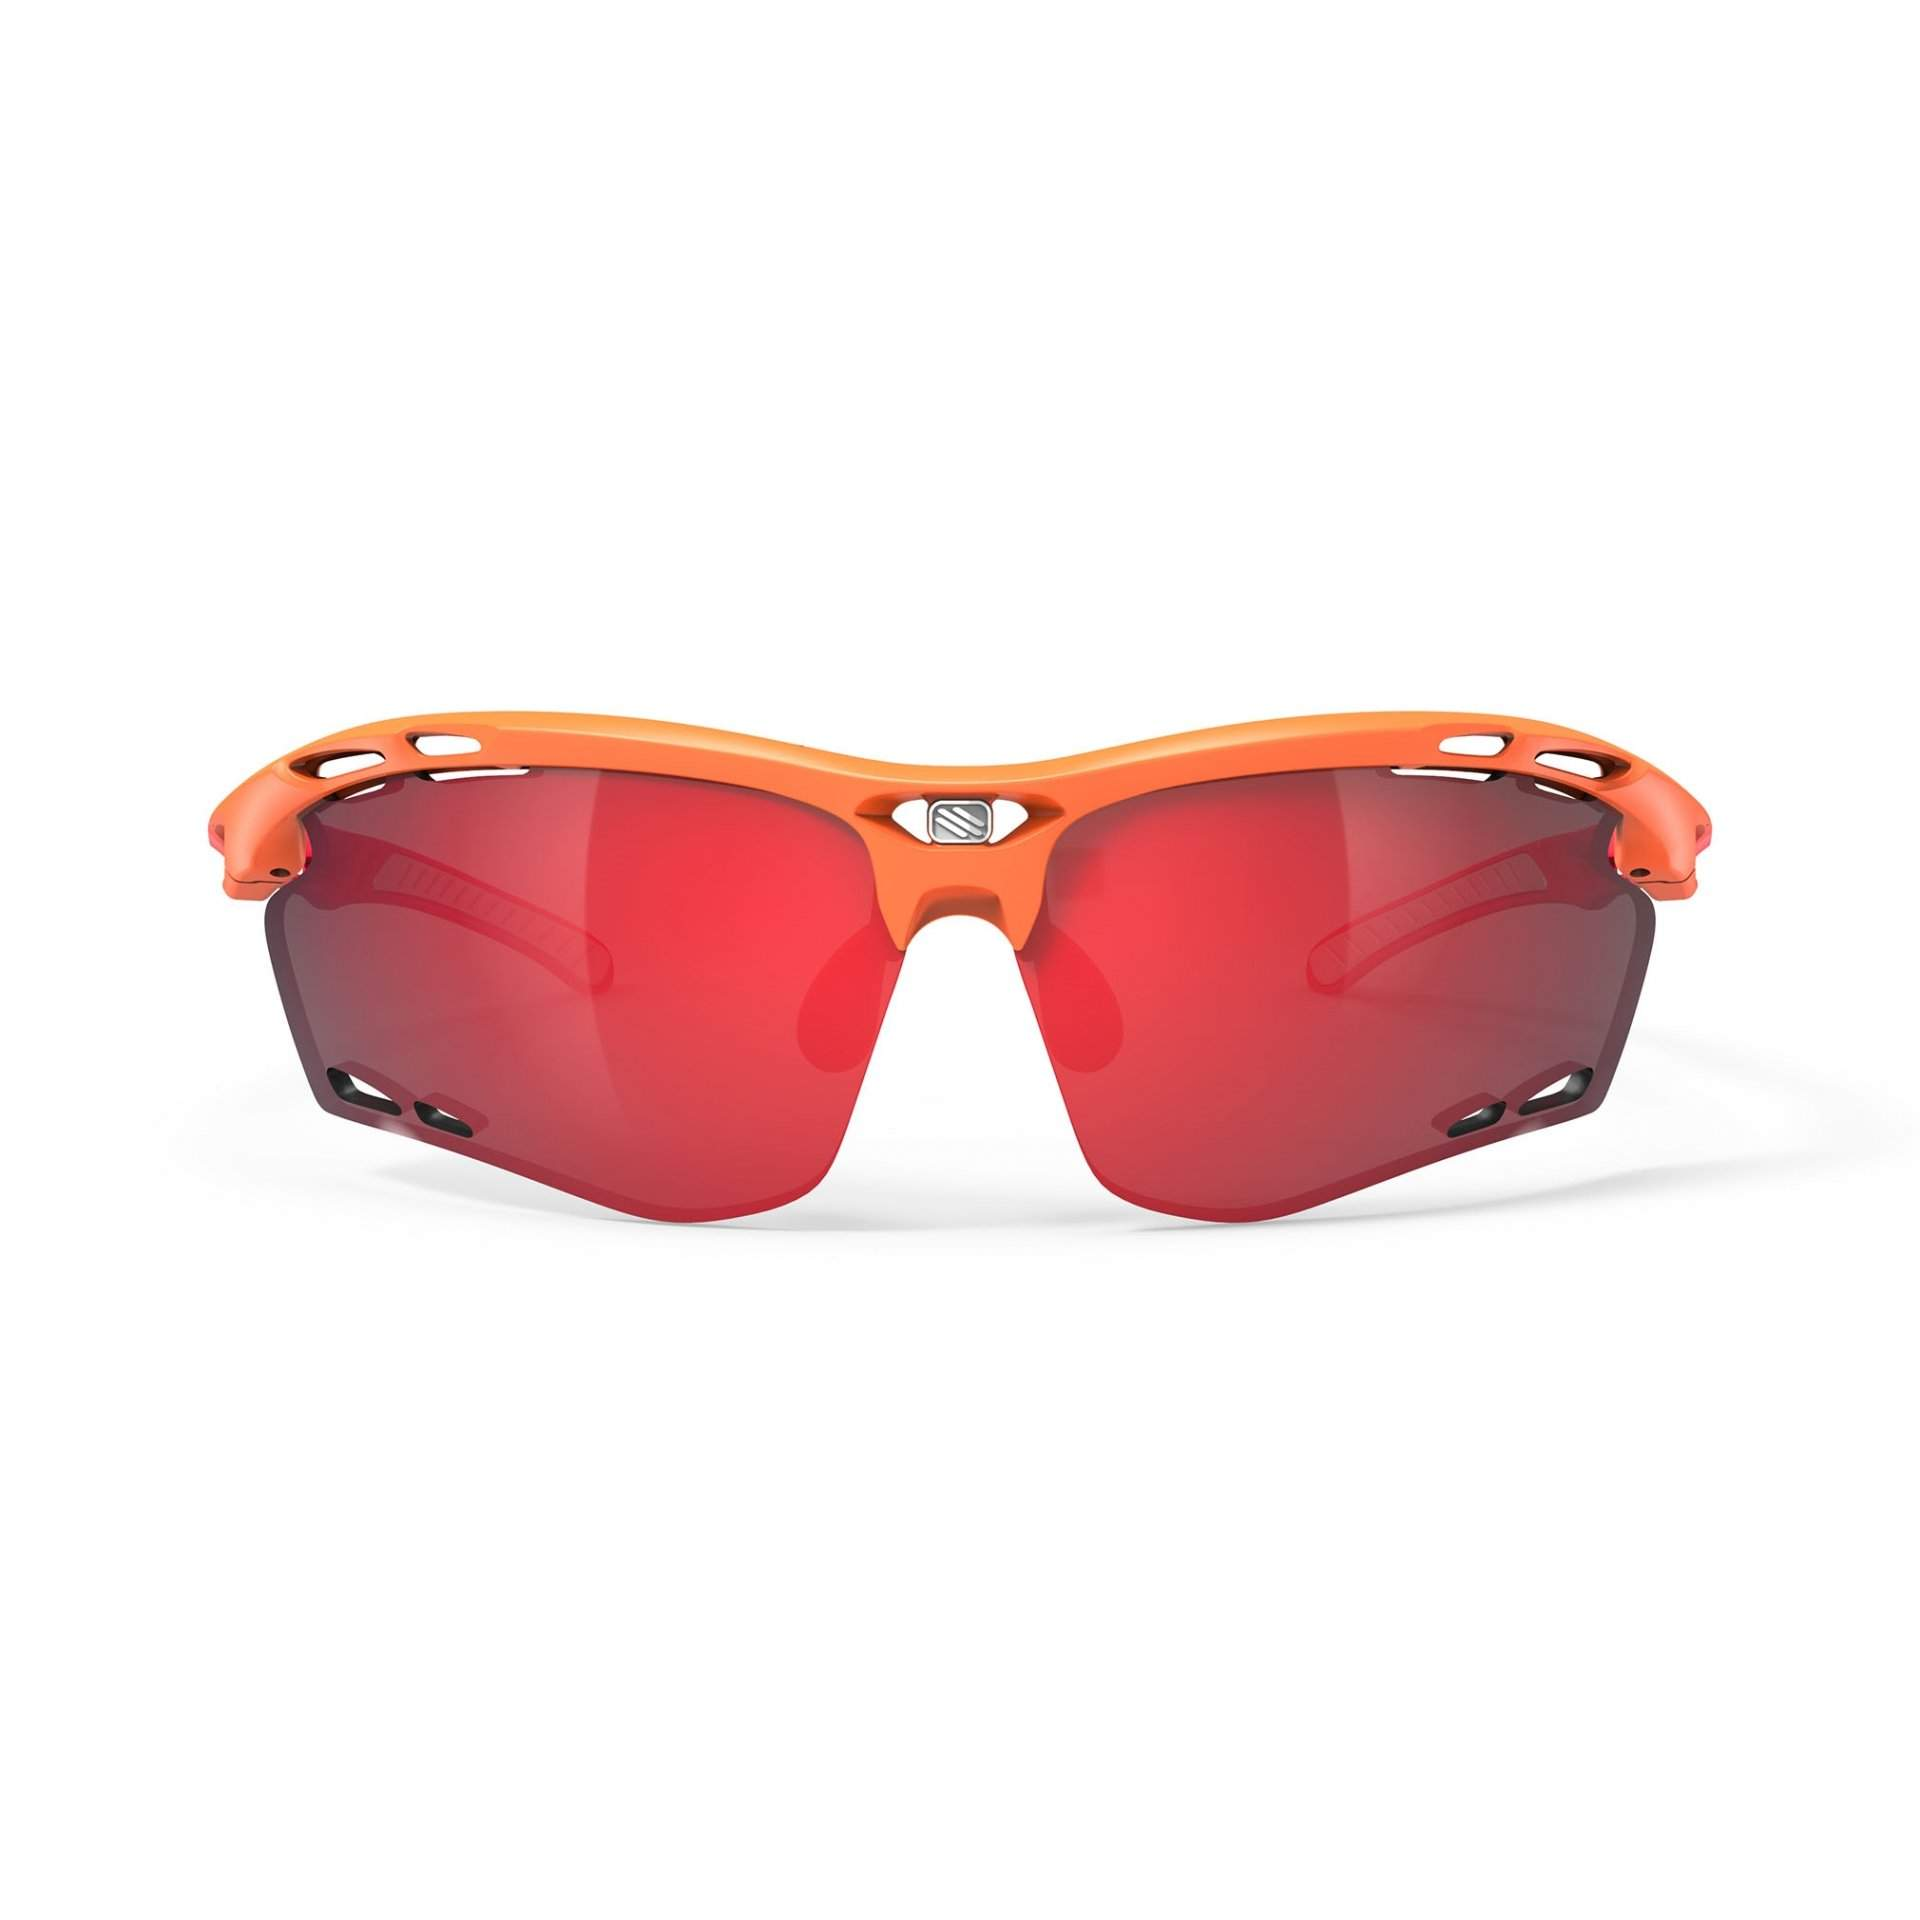 OKULARY RUDY PROJECT PROPULSE MANDARIN FADE CORAL MULTILASER RED 2